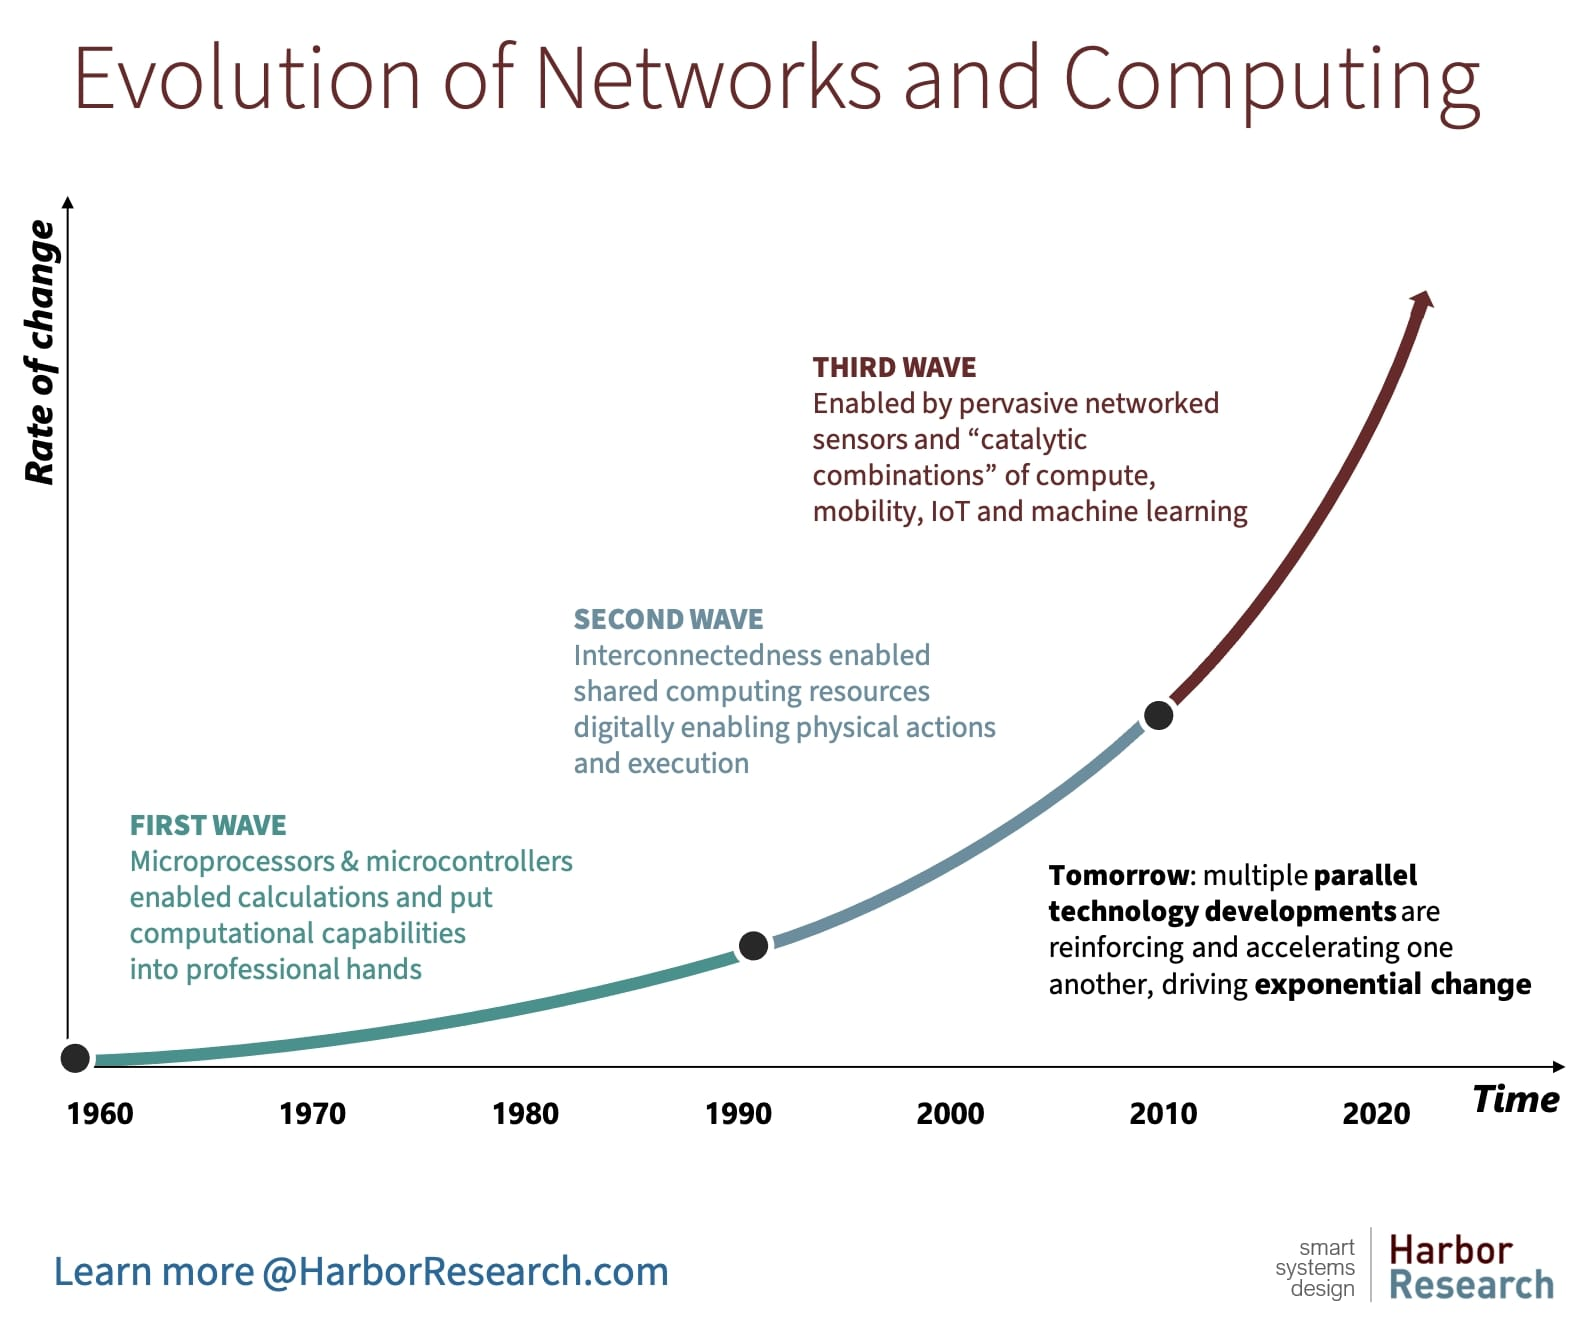 Evolution of Networks and Computing